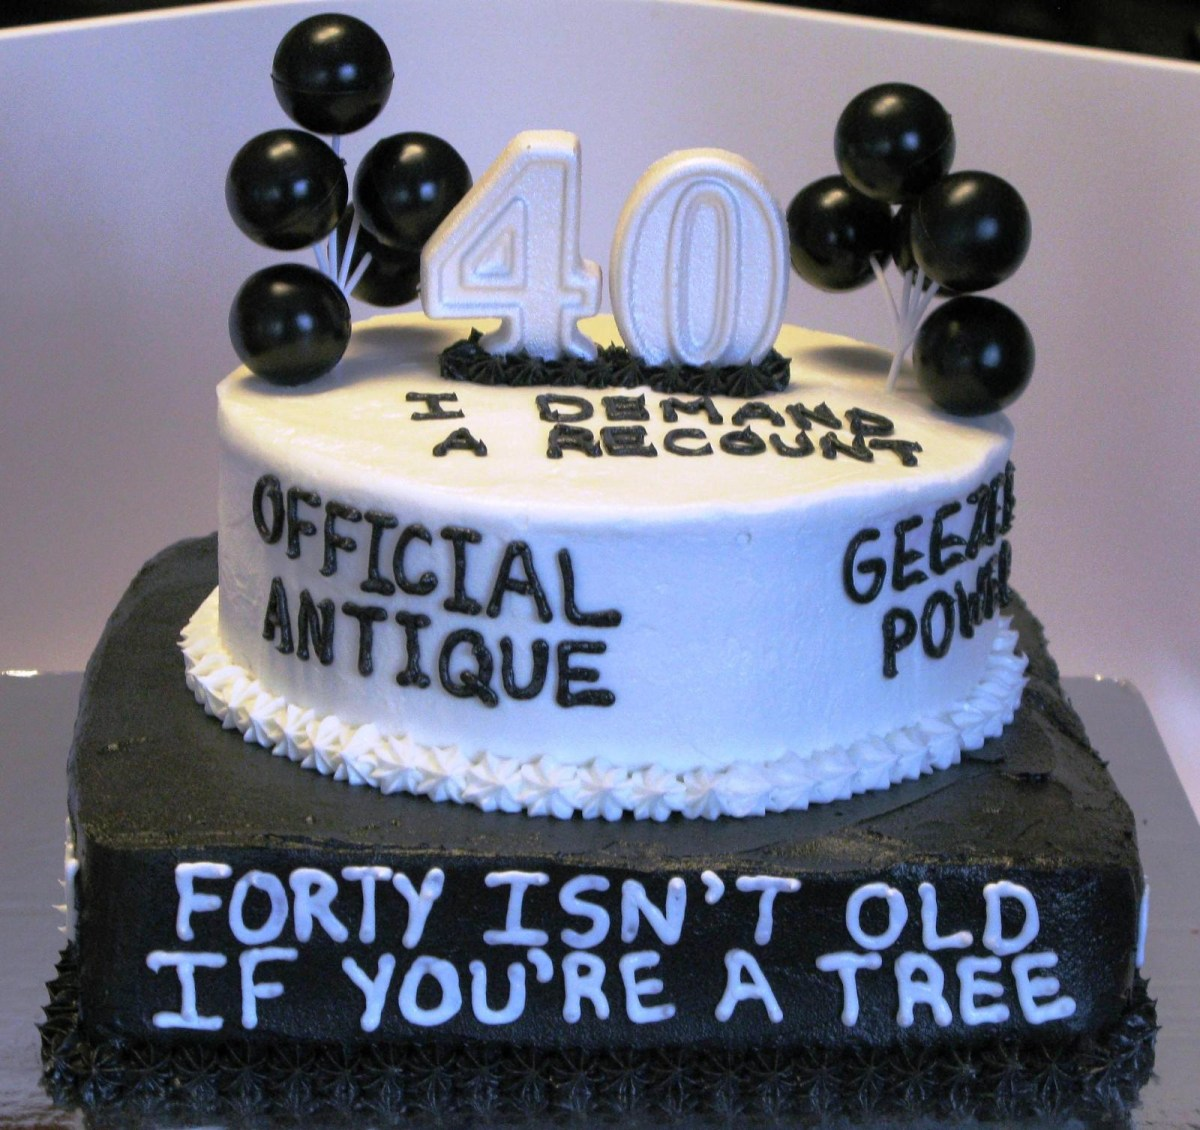 Groovy 40Th Birthday Cakes 40Th Birthday Cake Ideas Funny Protoblogr Funny Birthday Cards Online Inifofree Goldxyz